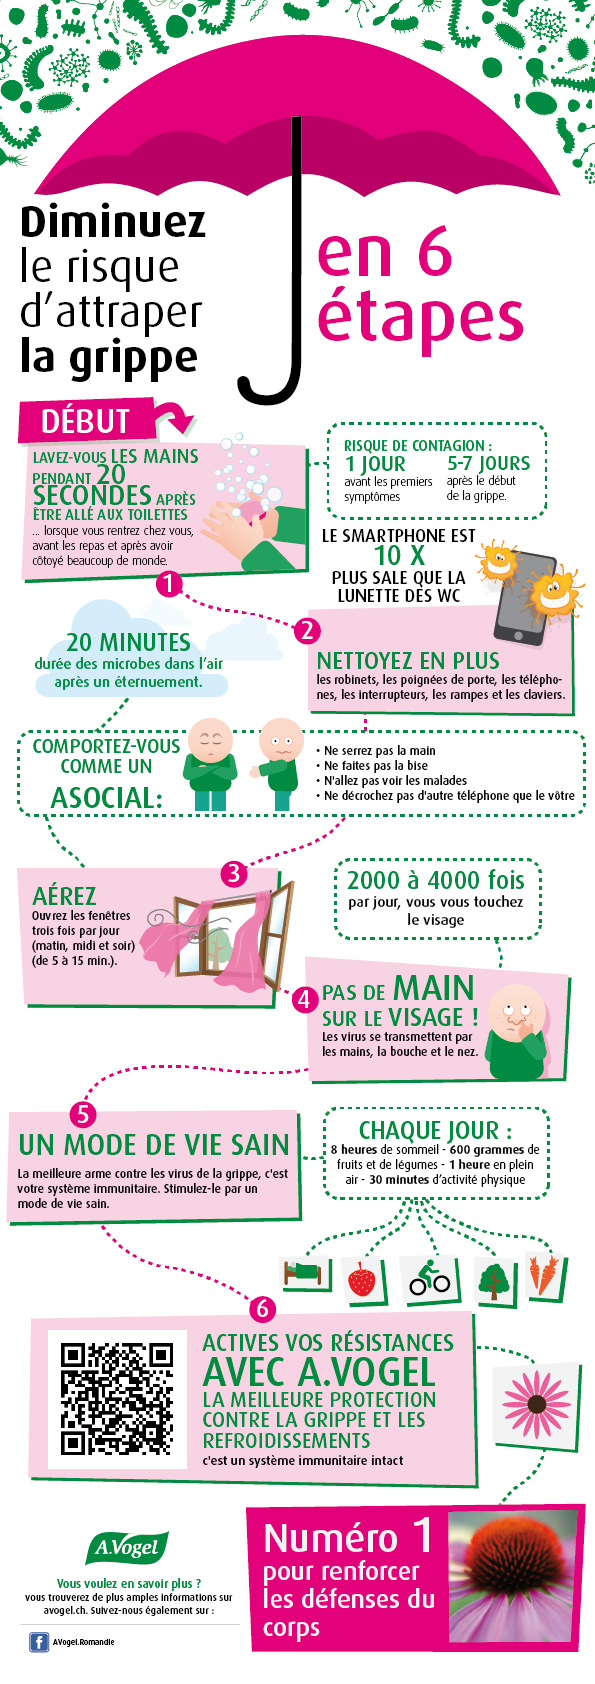 Infographie: Prevention de la Grippe